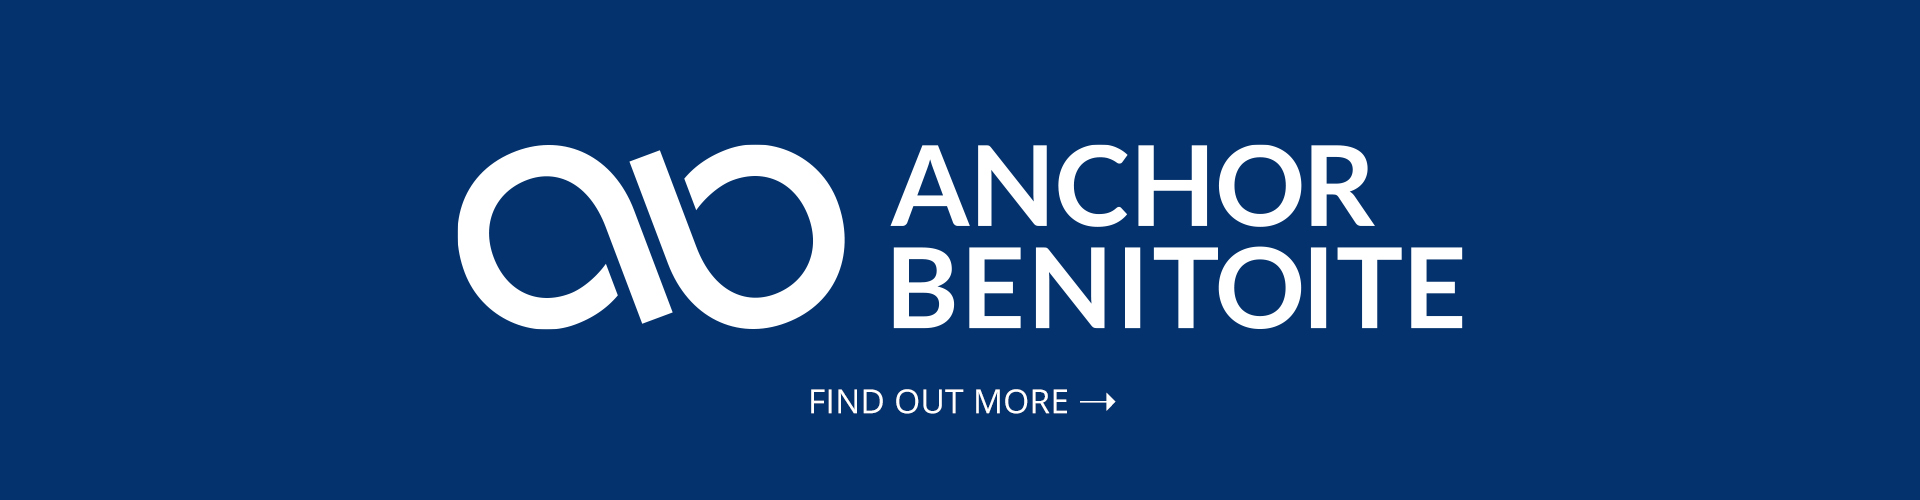 Anchor Benitoite